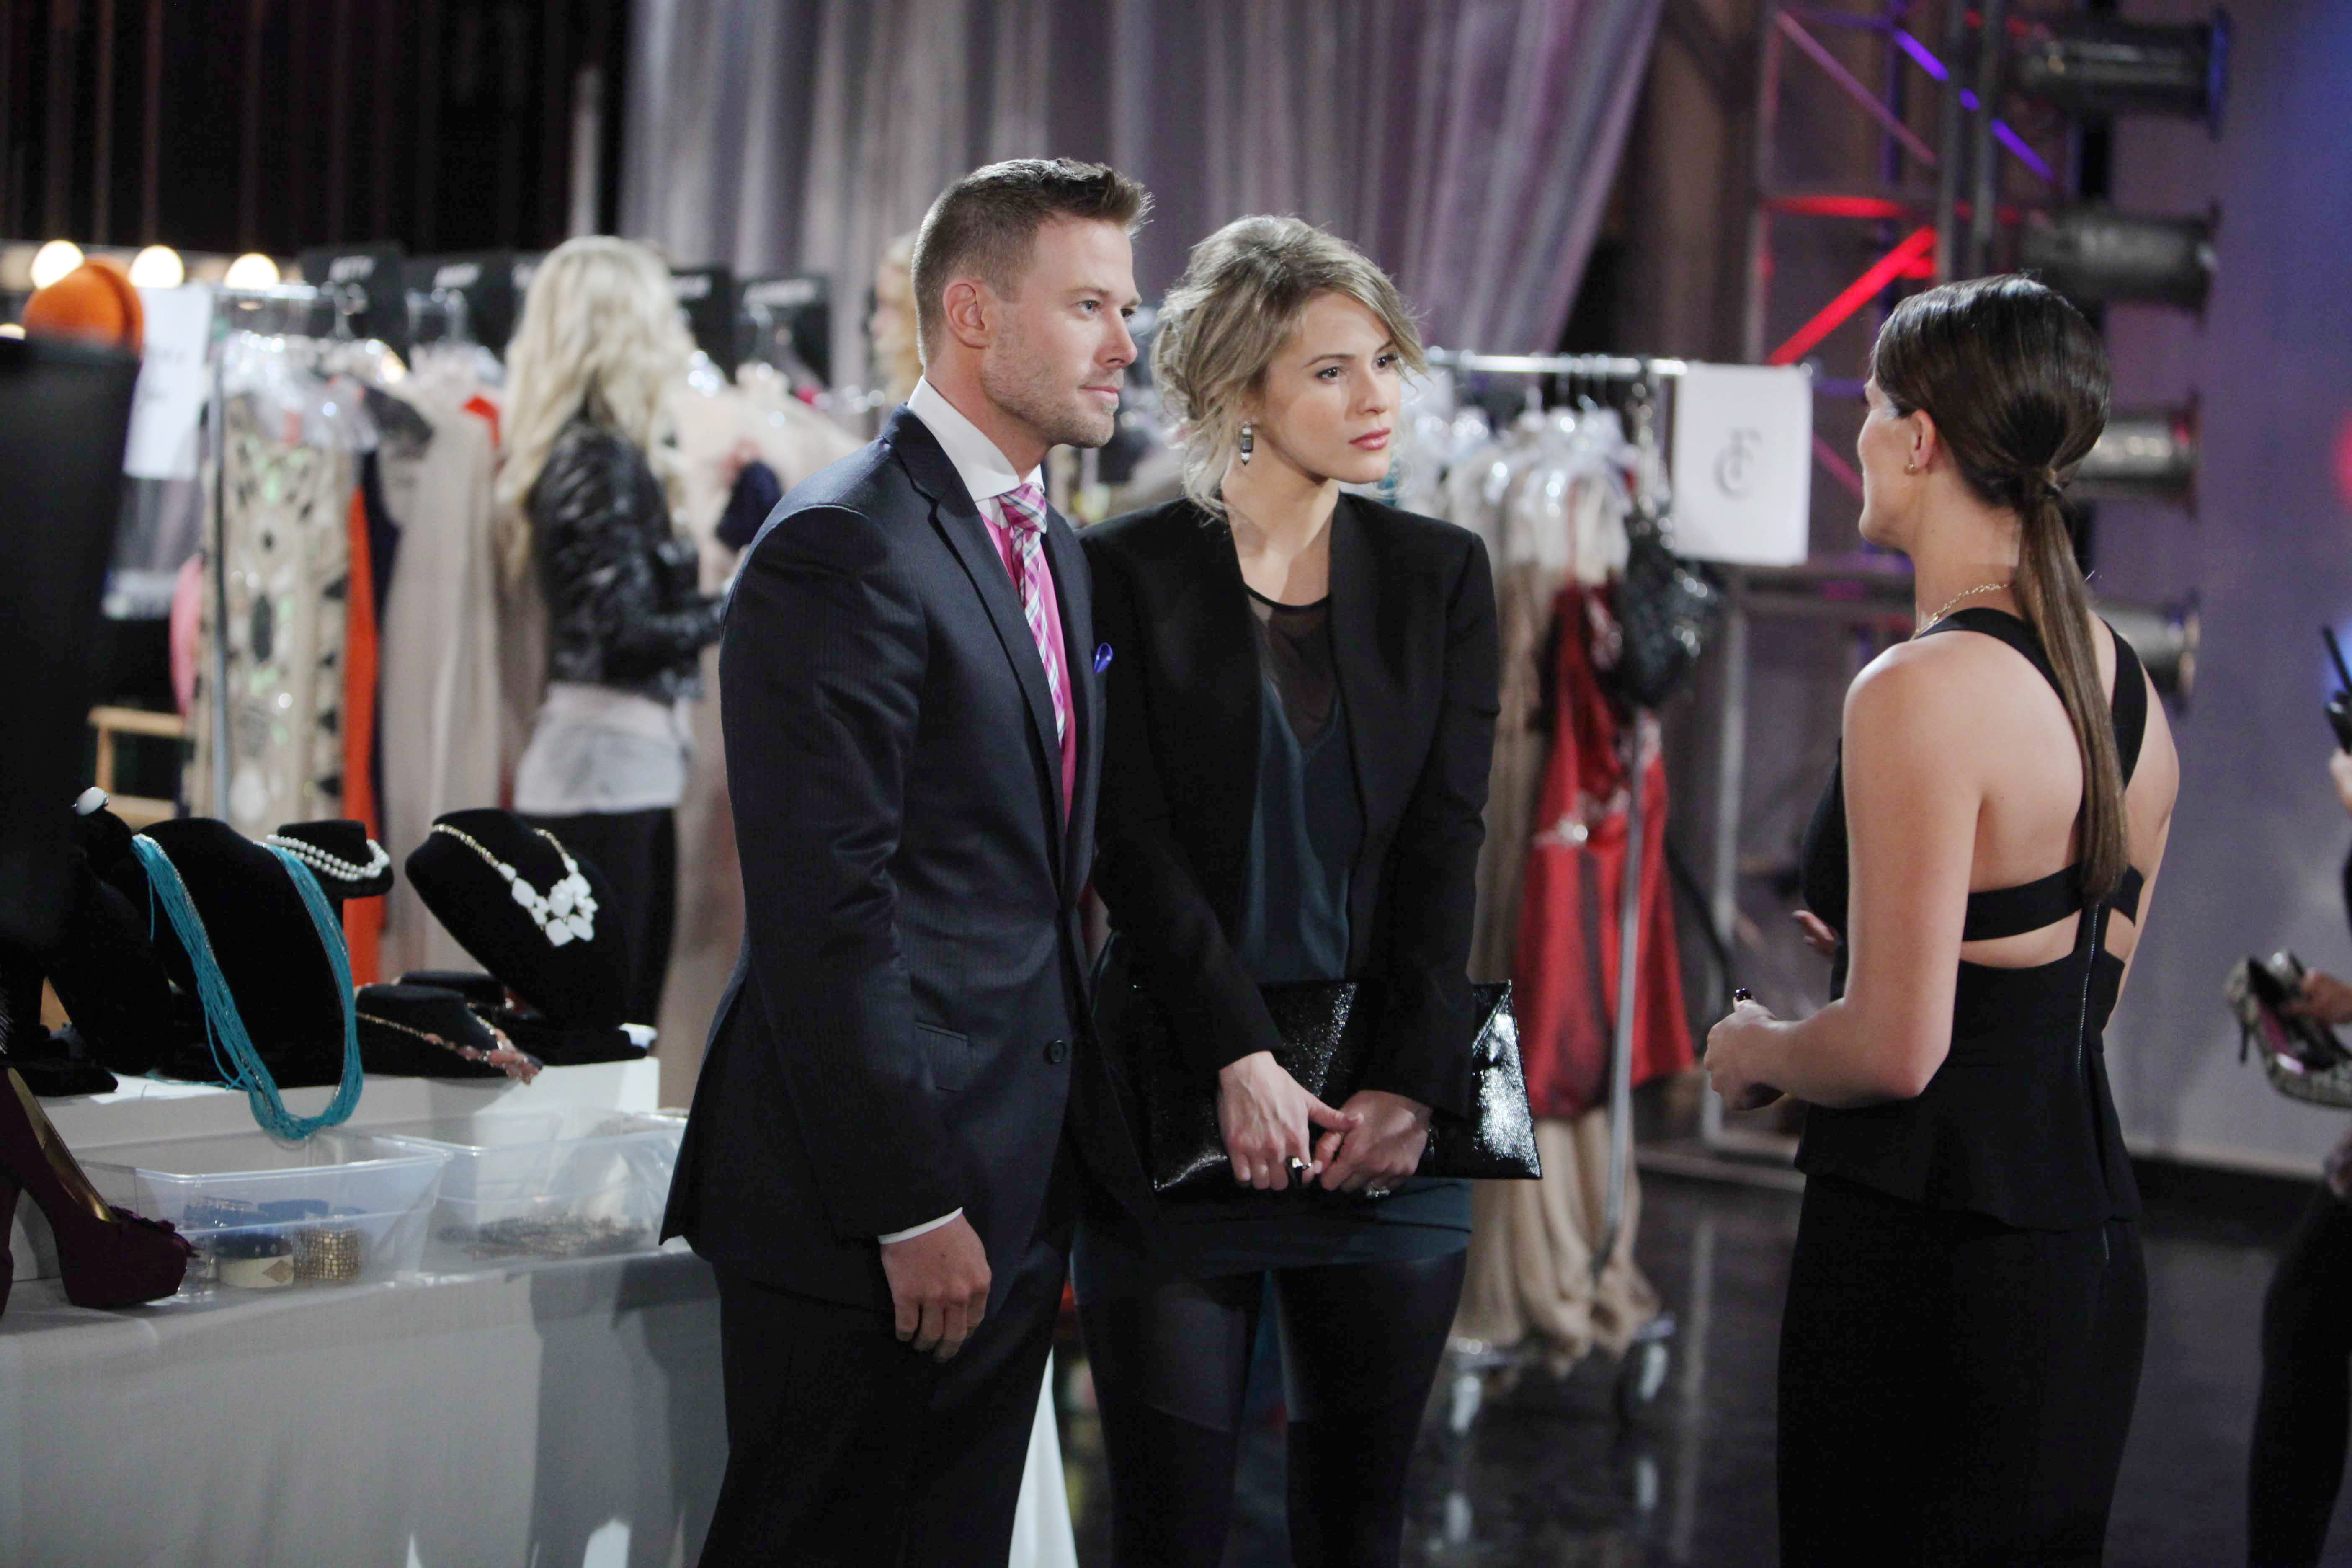 Rick (Jacob Young) and Caroline Forrester (Linsey Godfrey) visited Genoa City to attend Chelsea's Spring fashion show in 2014.